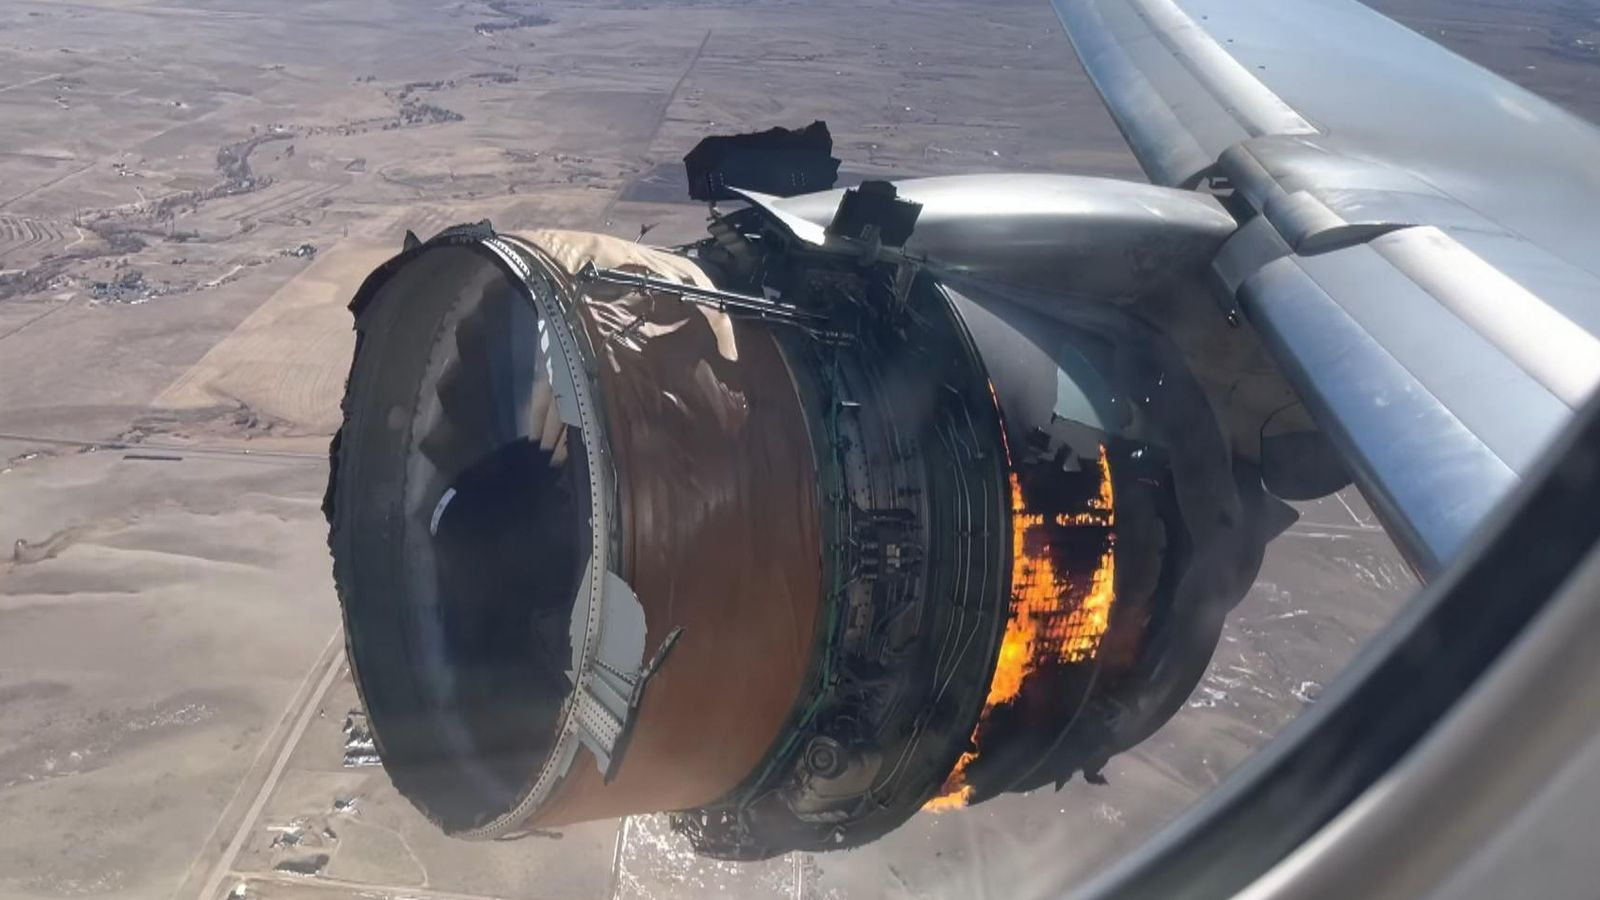 Denver plane engine fire consistent with metal fatigue, investigators say